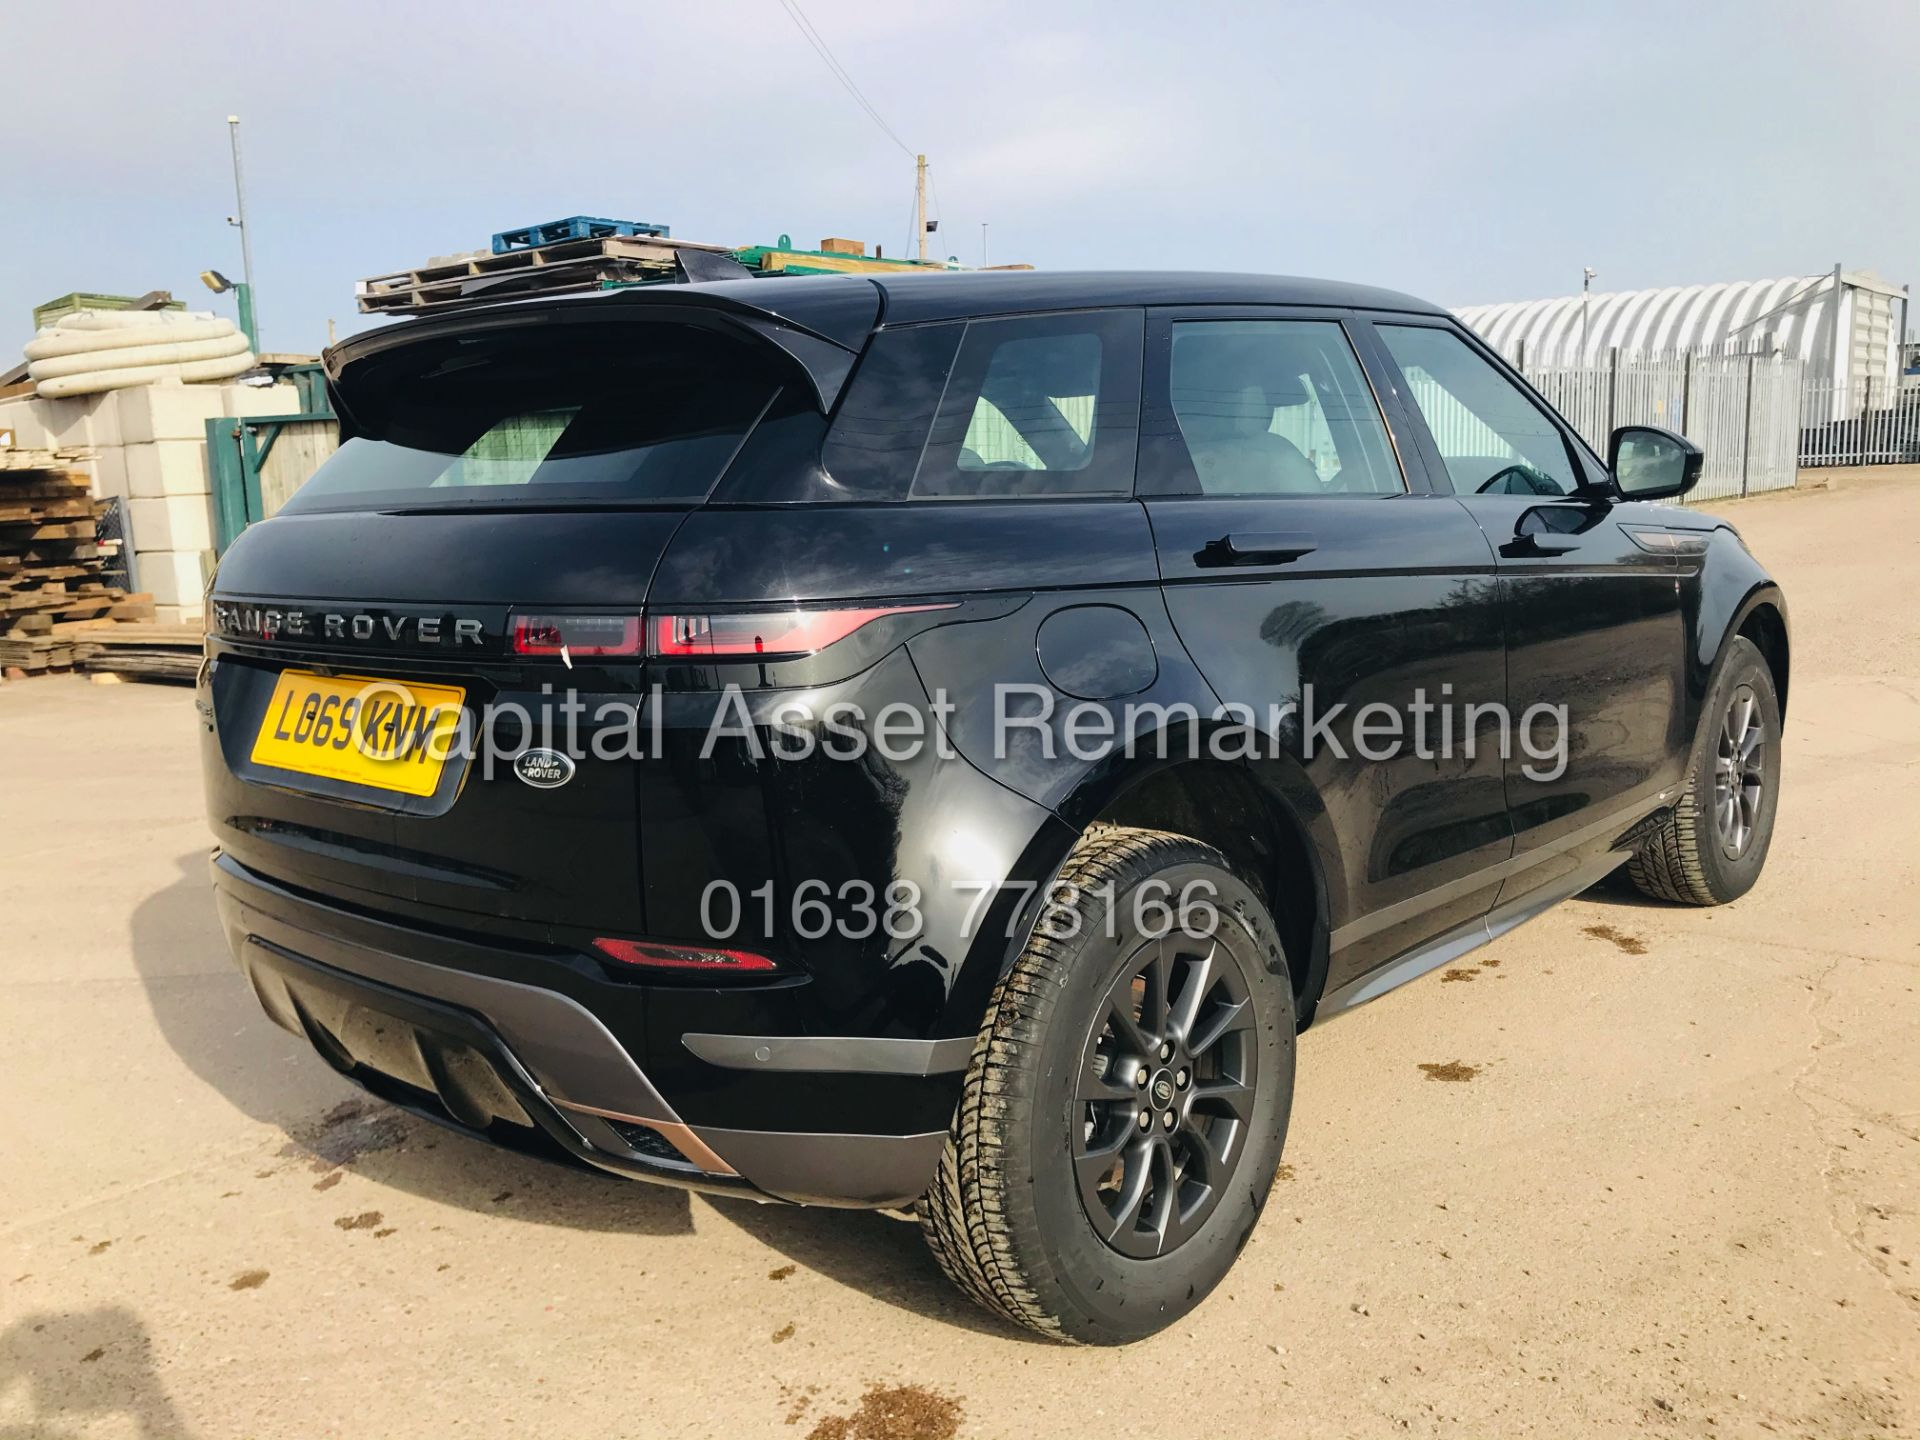 "(On Sale) RANGE ROVER EVOQUE R-DYNAMIC 2.0 D150 ""BLACK EDITION"" (2020) GREAT SPEC - ONLY 4500 MILES - Image 10 of 26"